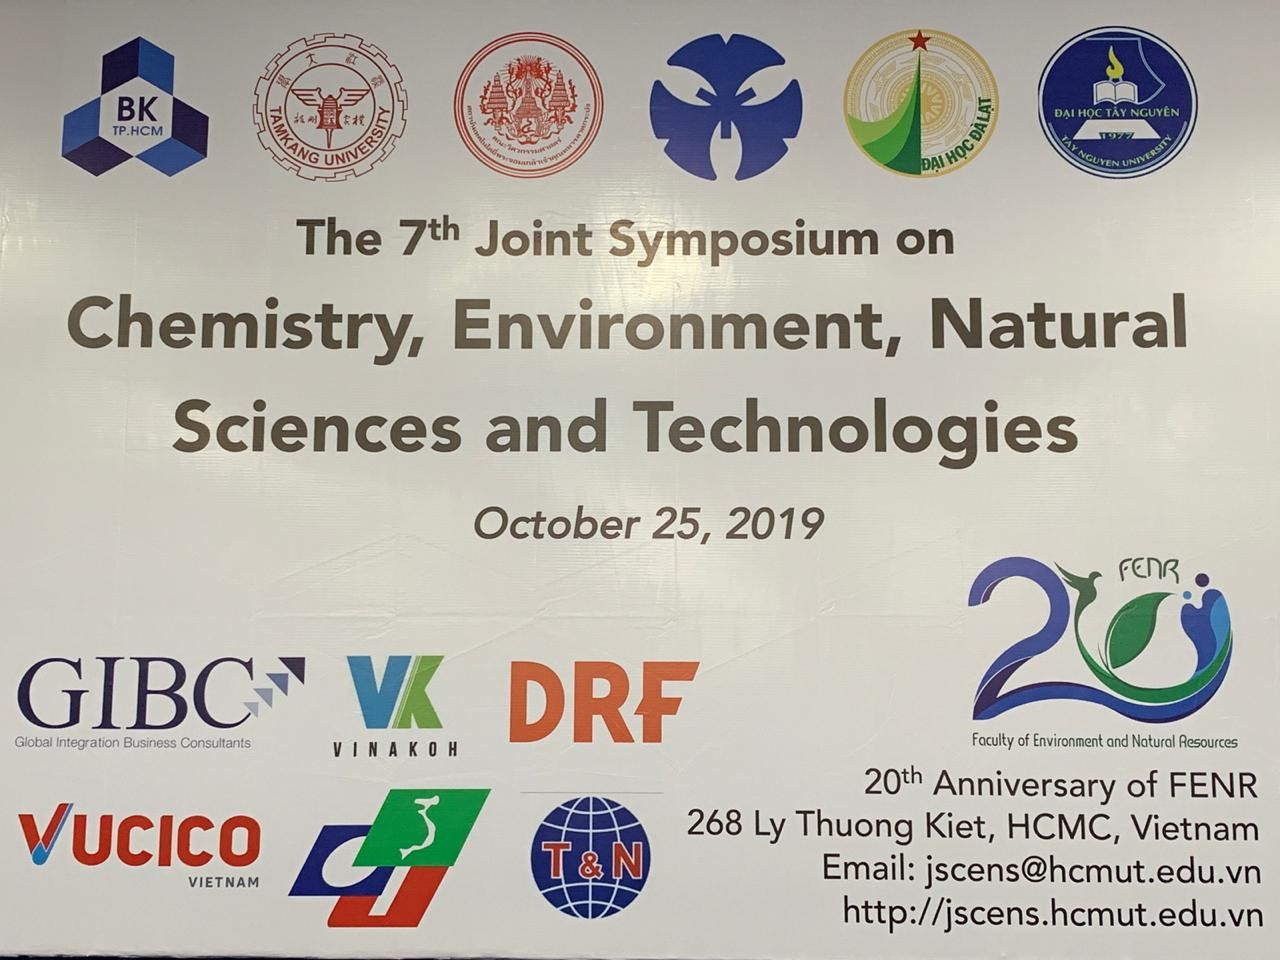 VUCICO JOINED, SPONSORED AND PRESENTED AT THE 7TH SEMINAR ON CHEMICAL, ENVIRONMENT, NATURAL SCIENCE AND TECHNOLOGY